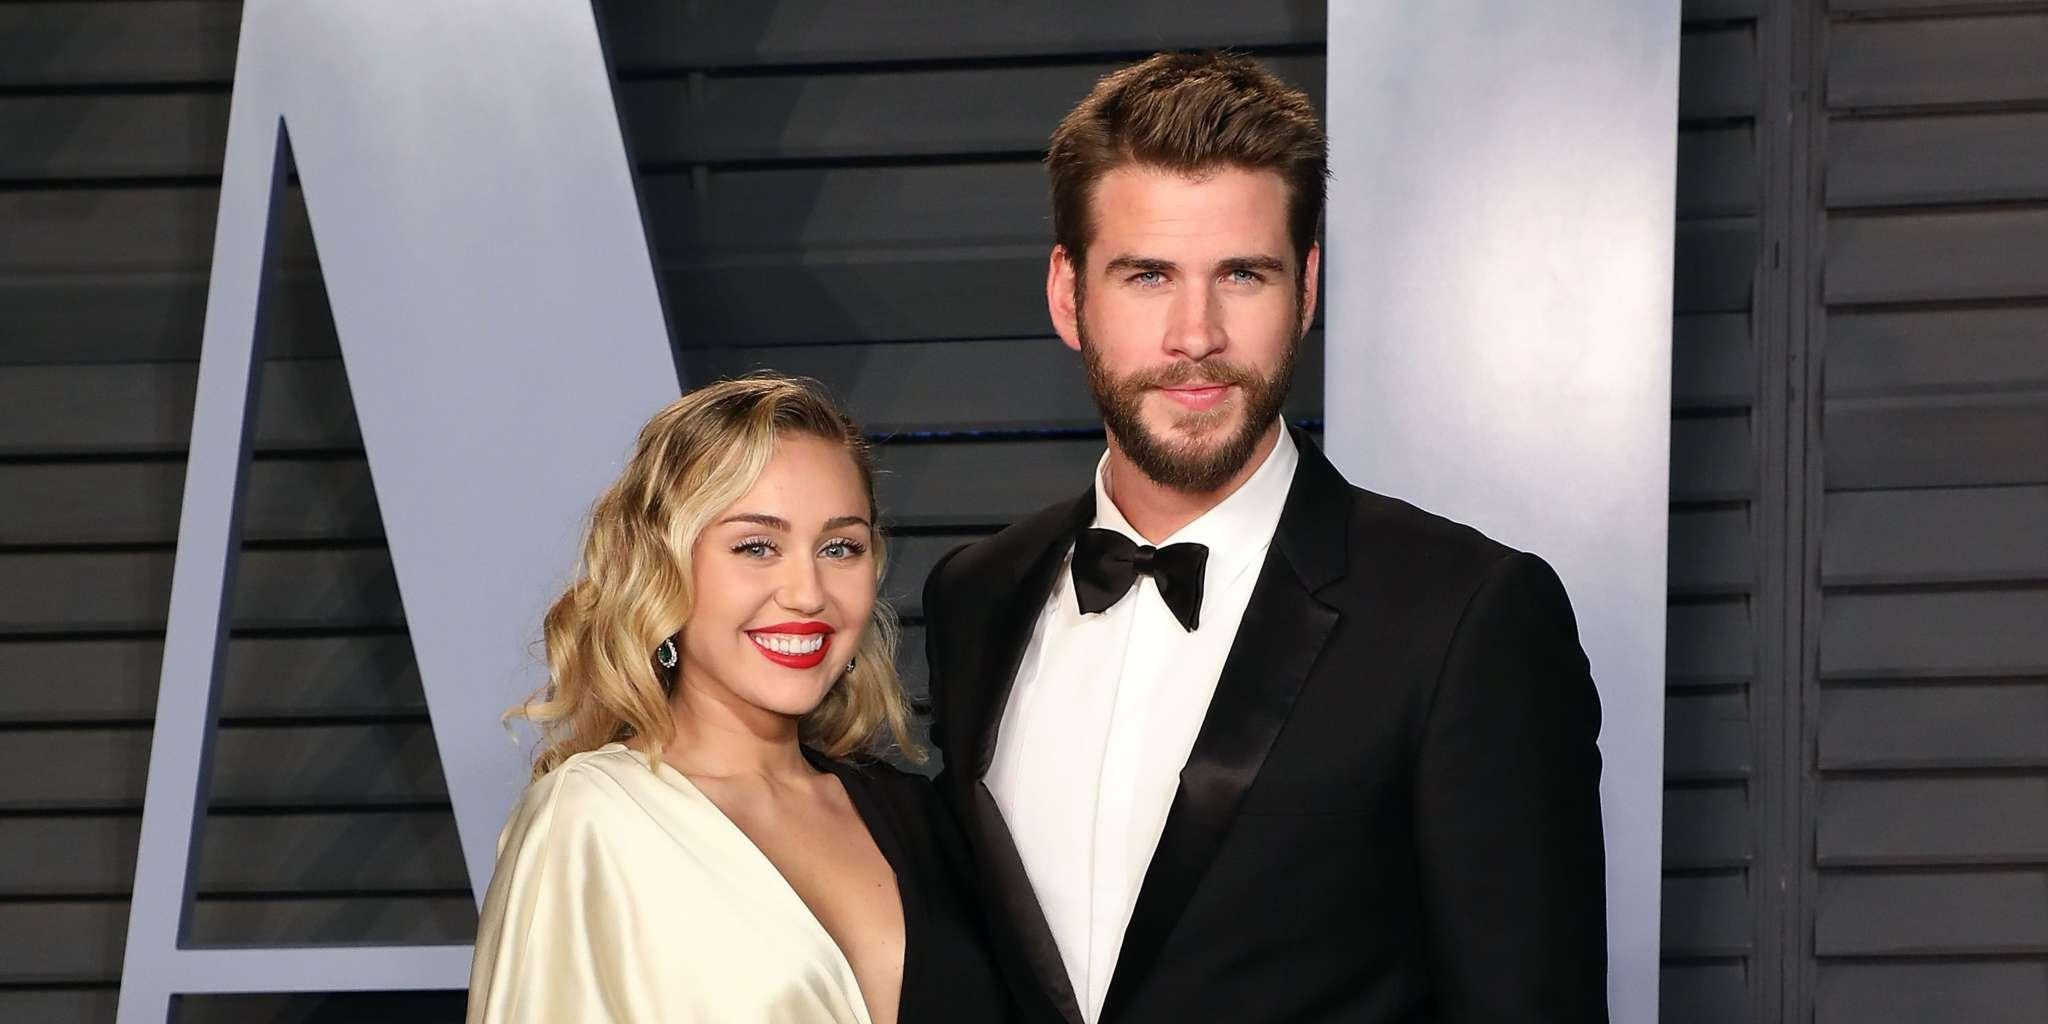 Miley Cyrus Shows Off Brand New Tattoo At The VMAs And It's Seemingly About Liam!